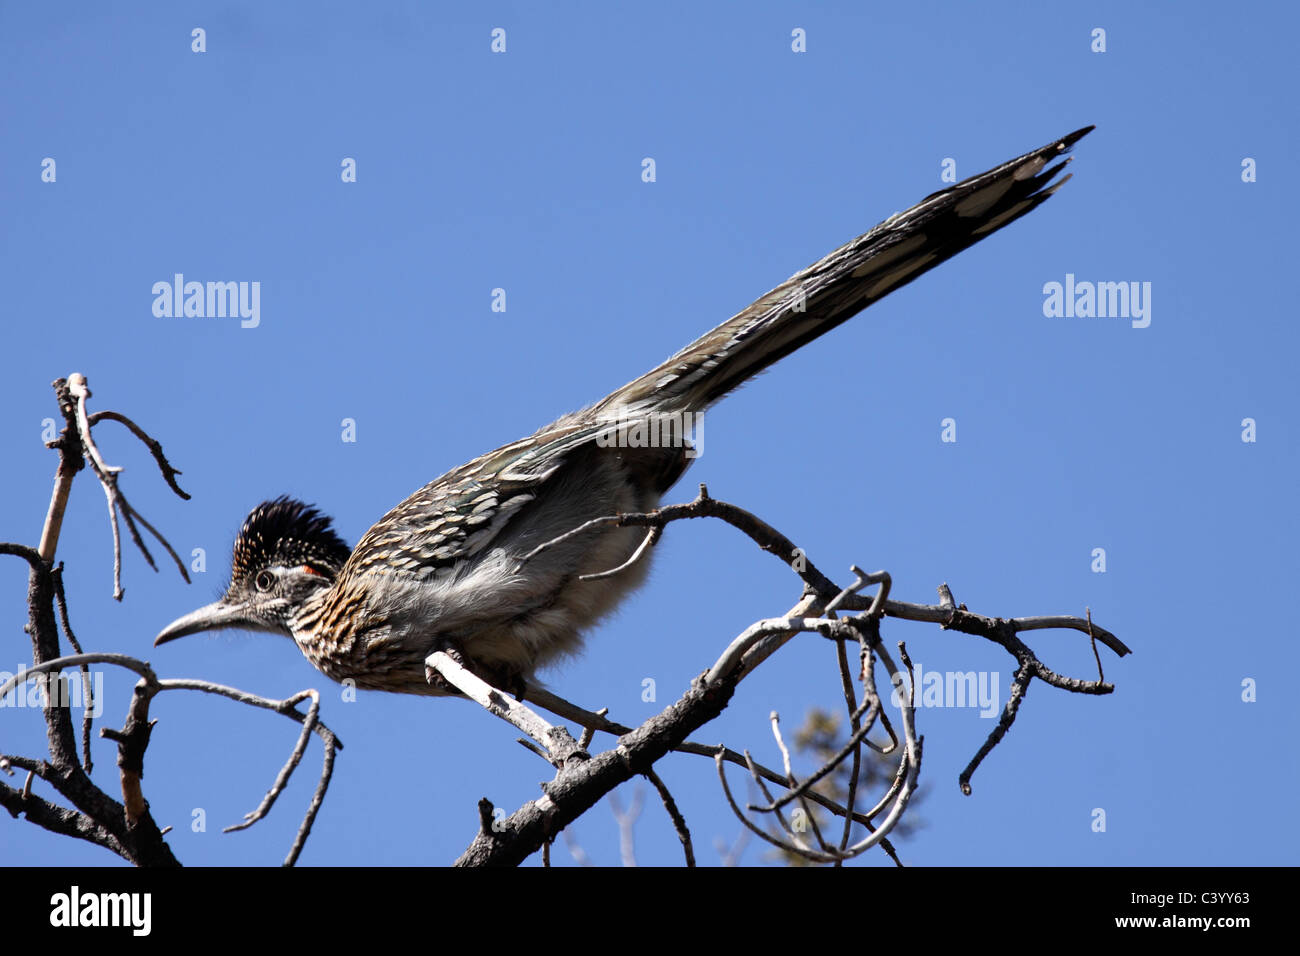 Greater roadrunner perched on top of Juniper tree in Arizona - Stock Image